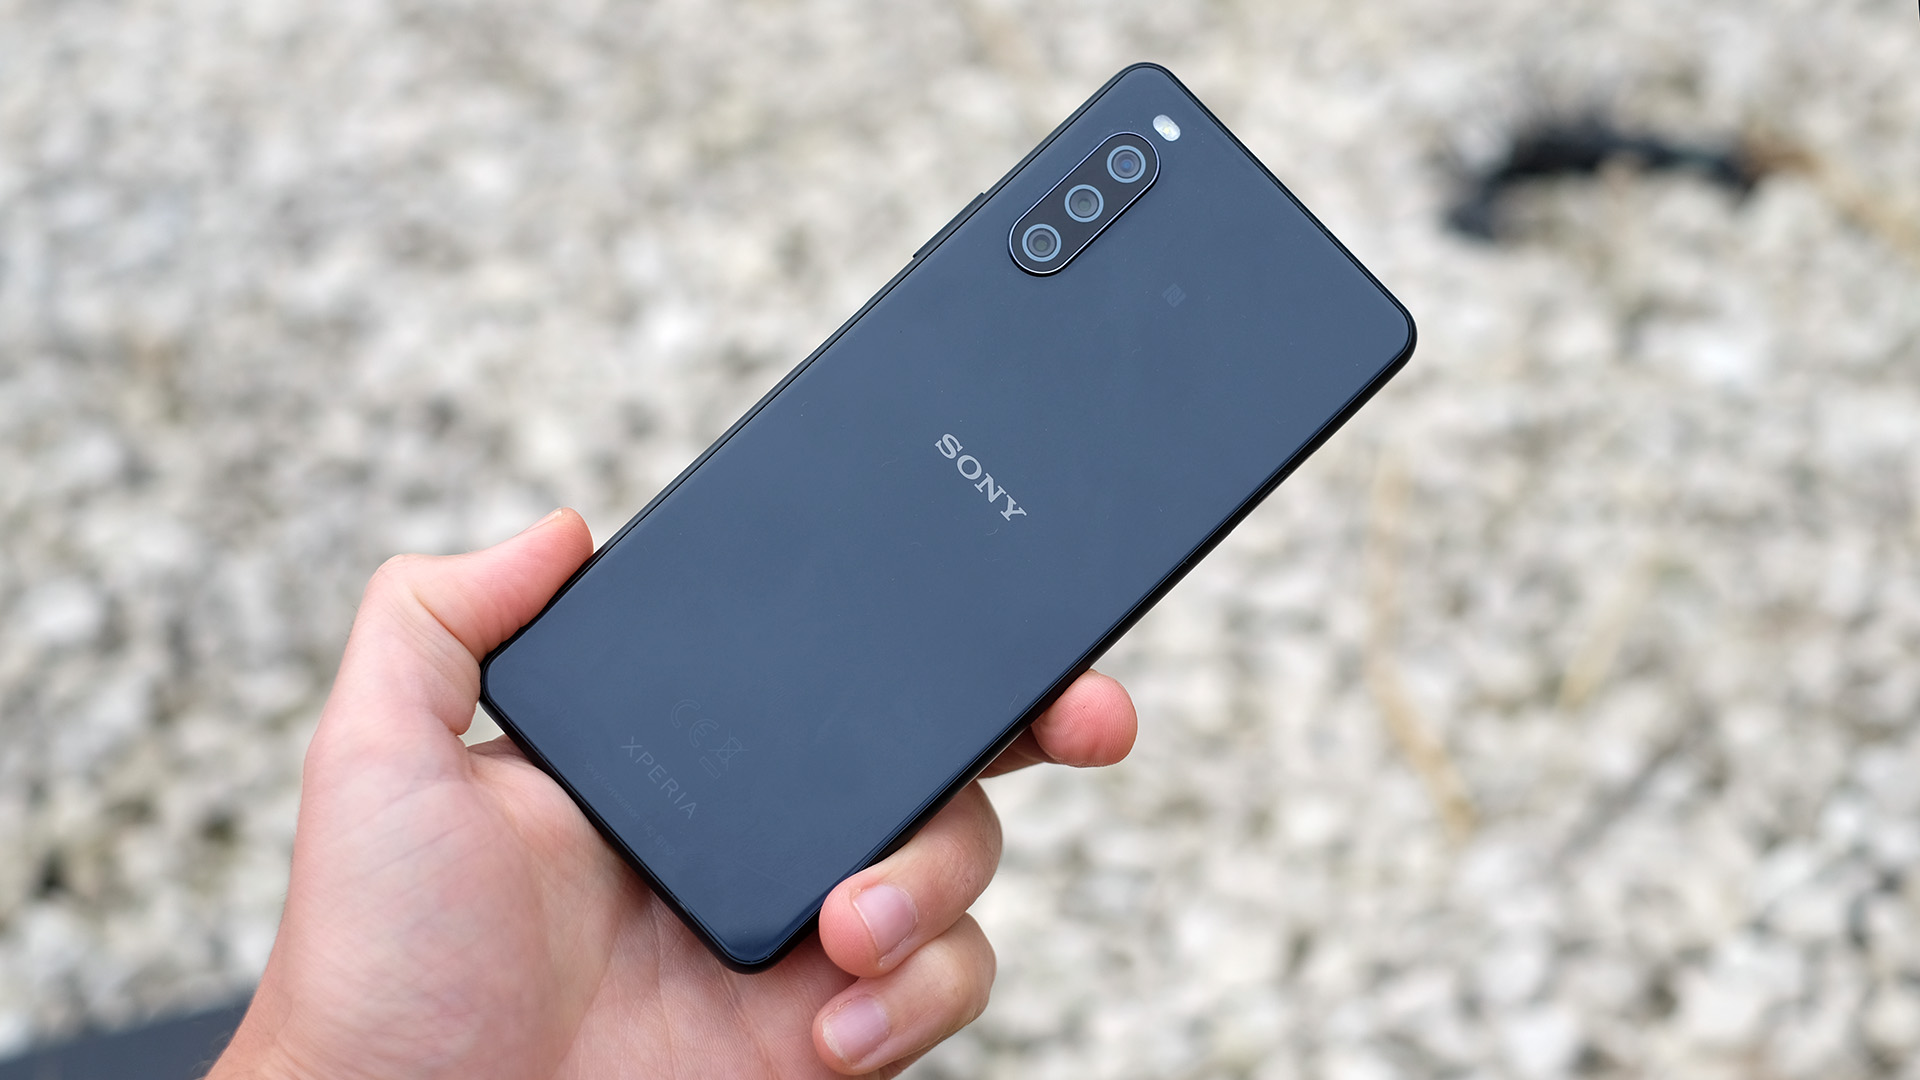 The back of the Sony Xperia 10 III